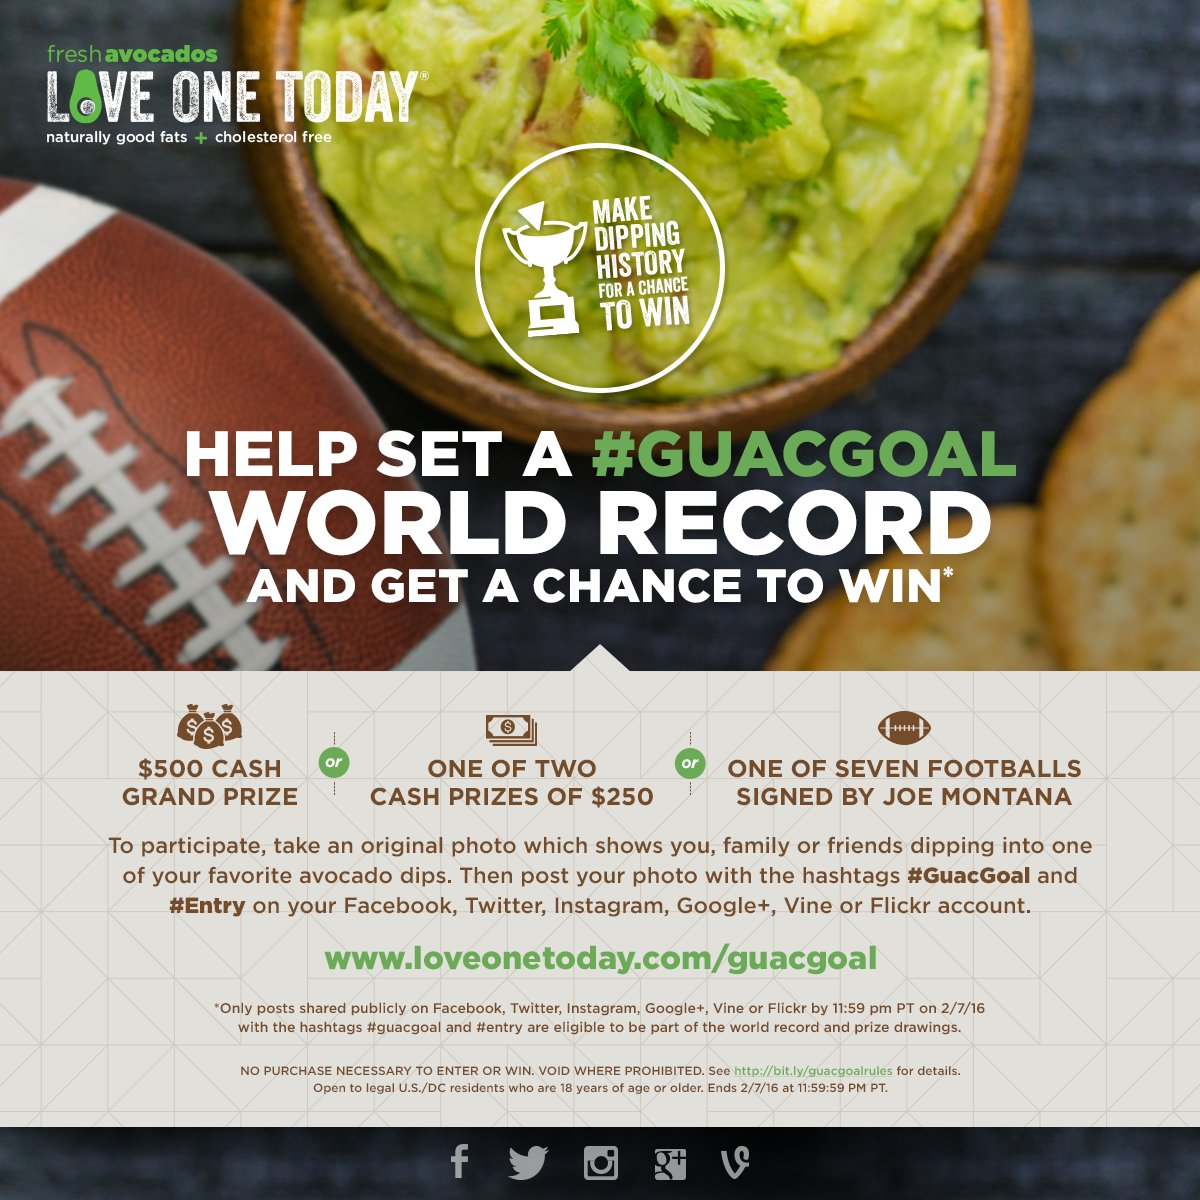 Make dipping history for a chance to #WIN cash prizes! Rules: https://t.co/YzLxsvZYTp #GuacGoal https://t.co/nRv81ejGgL